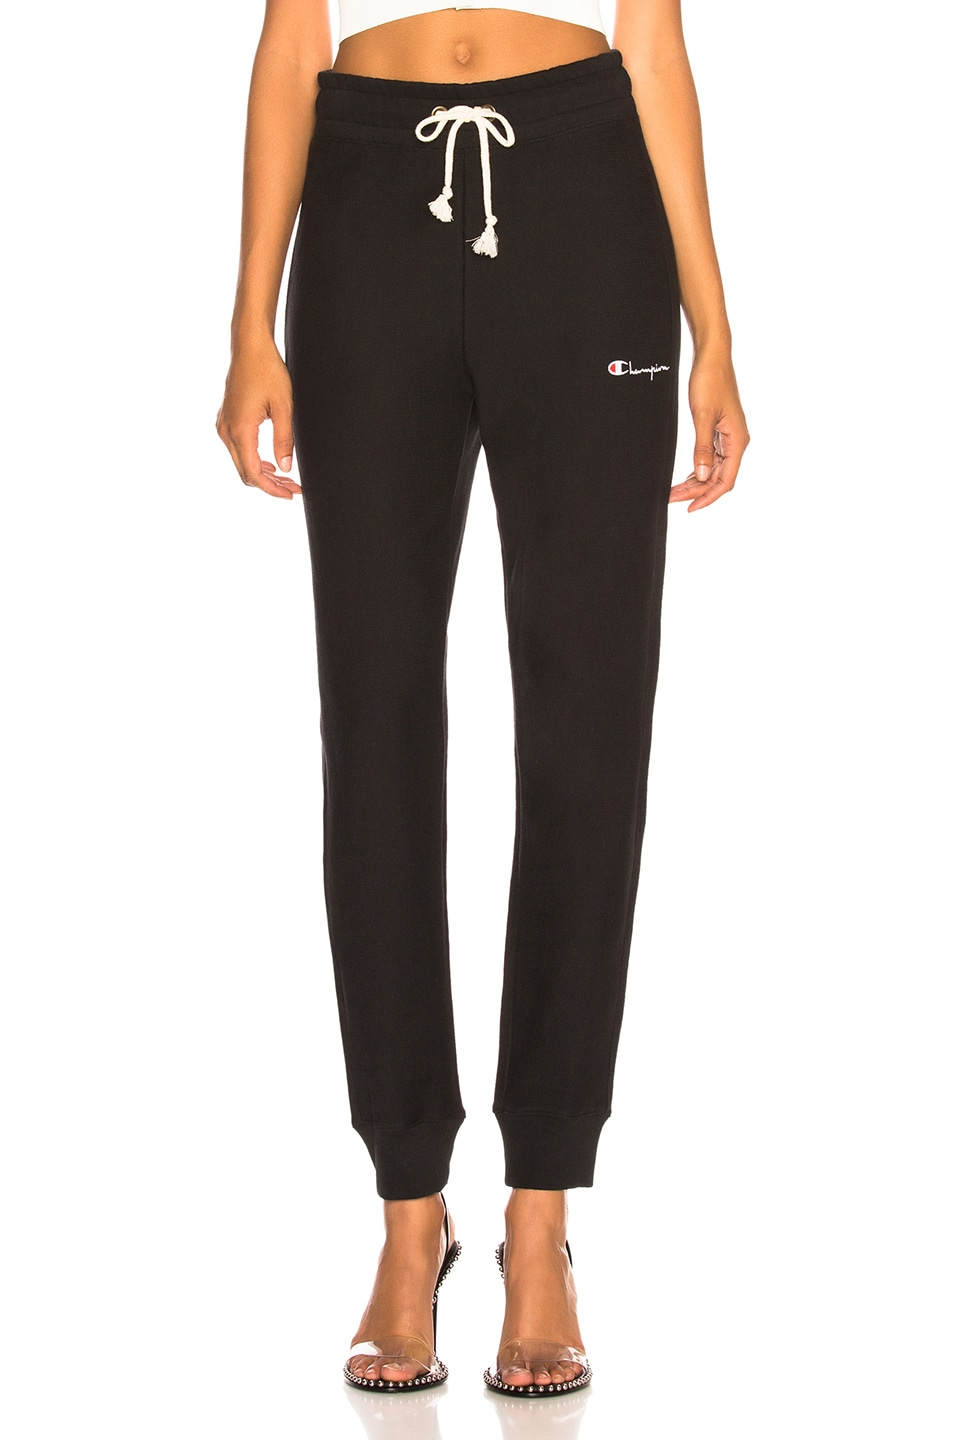 e649f4729e14 Image 1 of Champion Rib Cuff Pants in Black